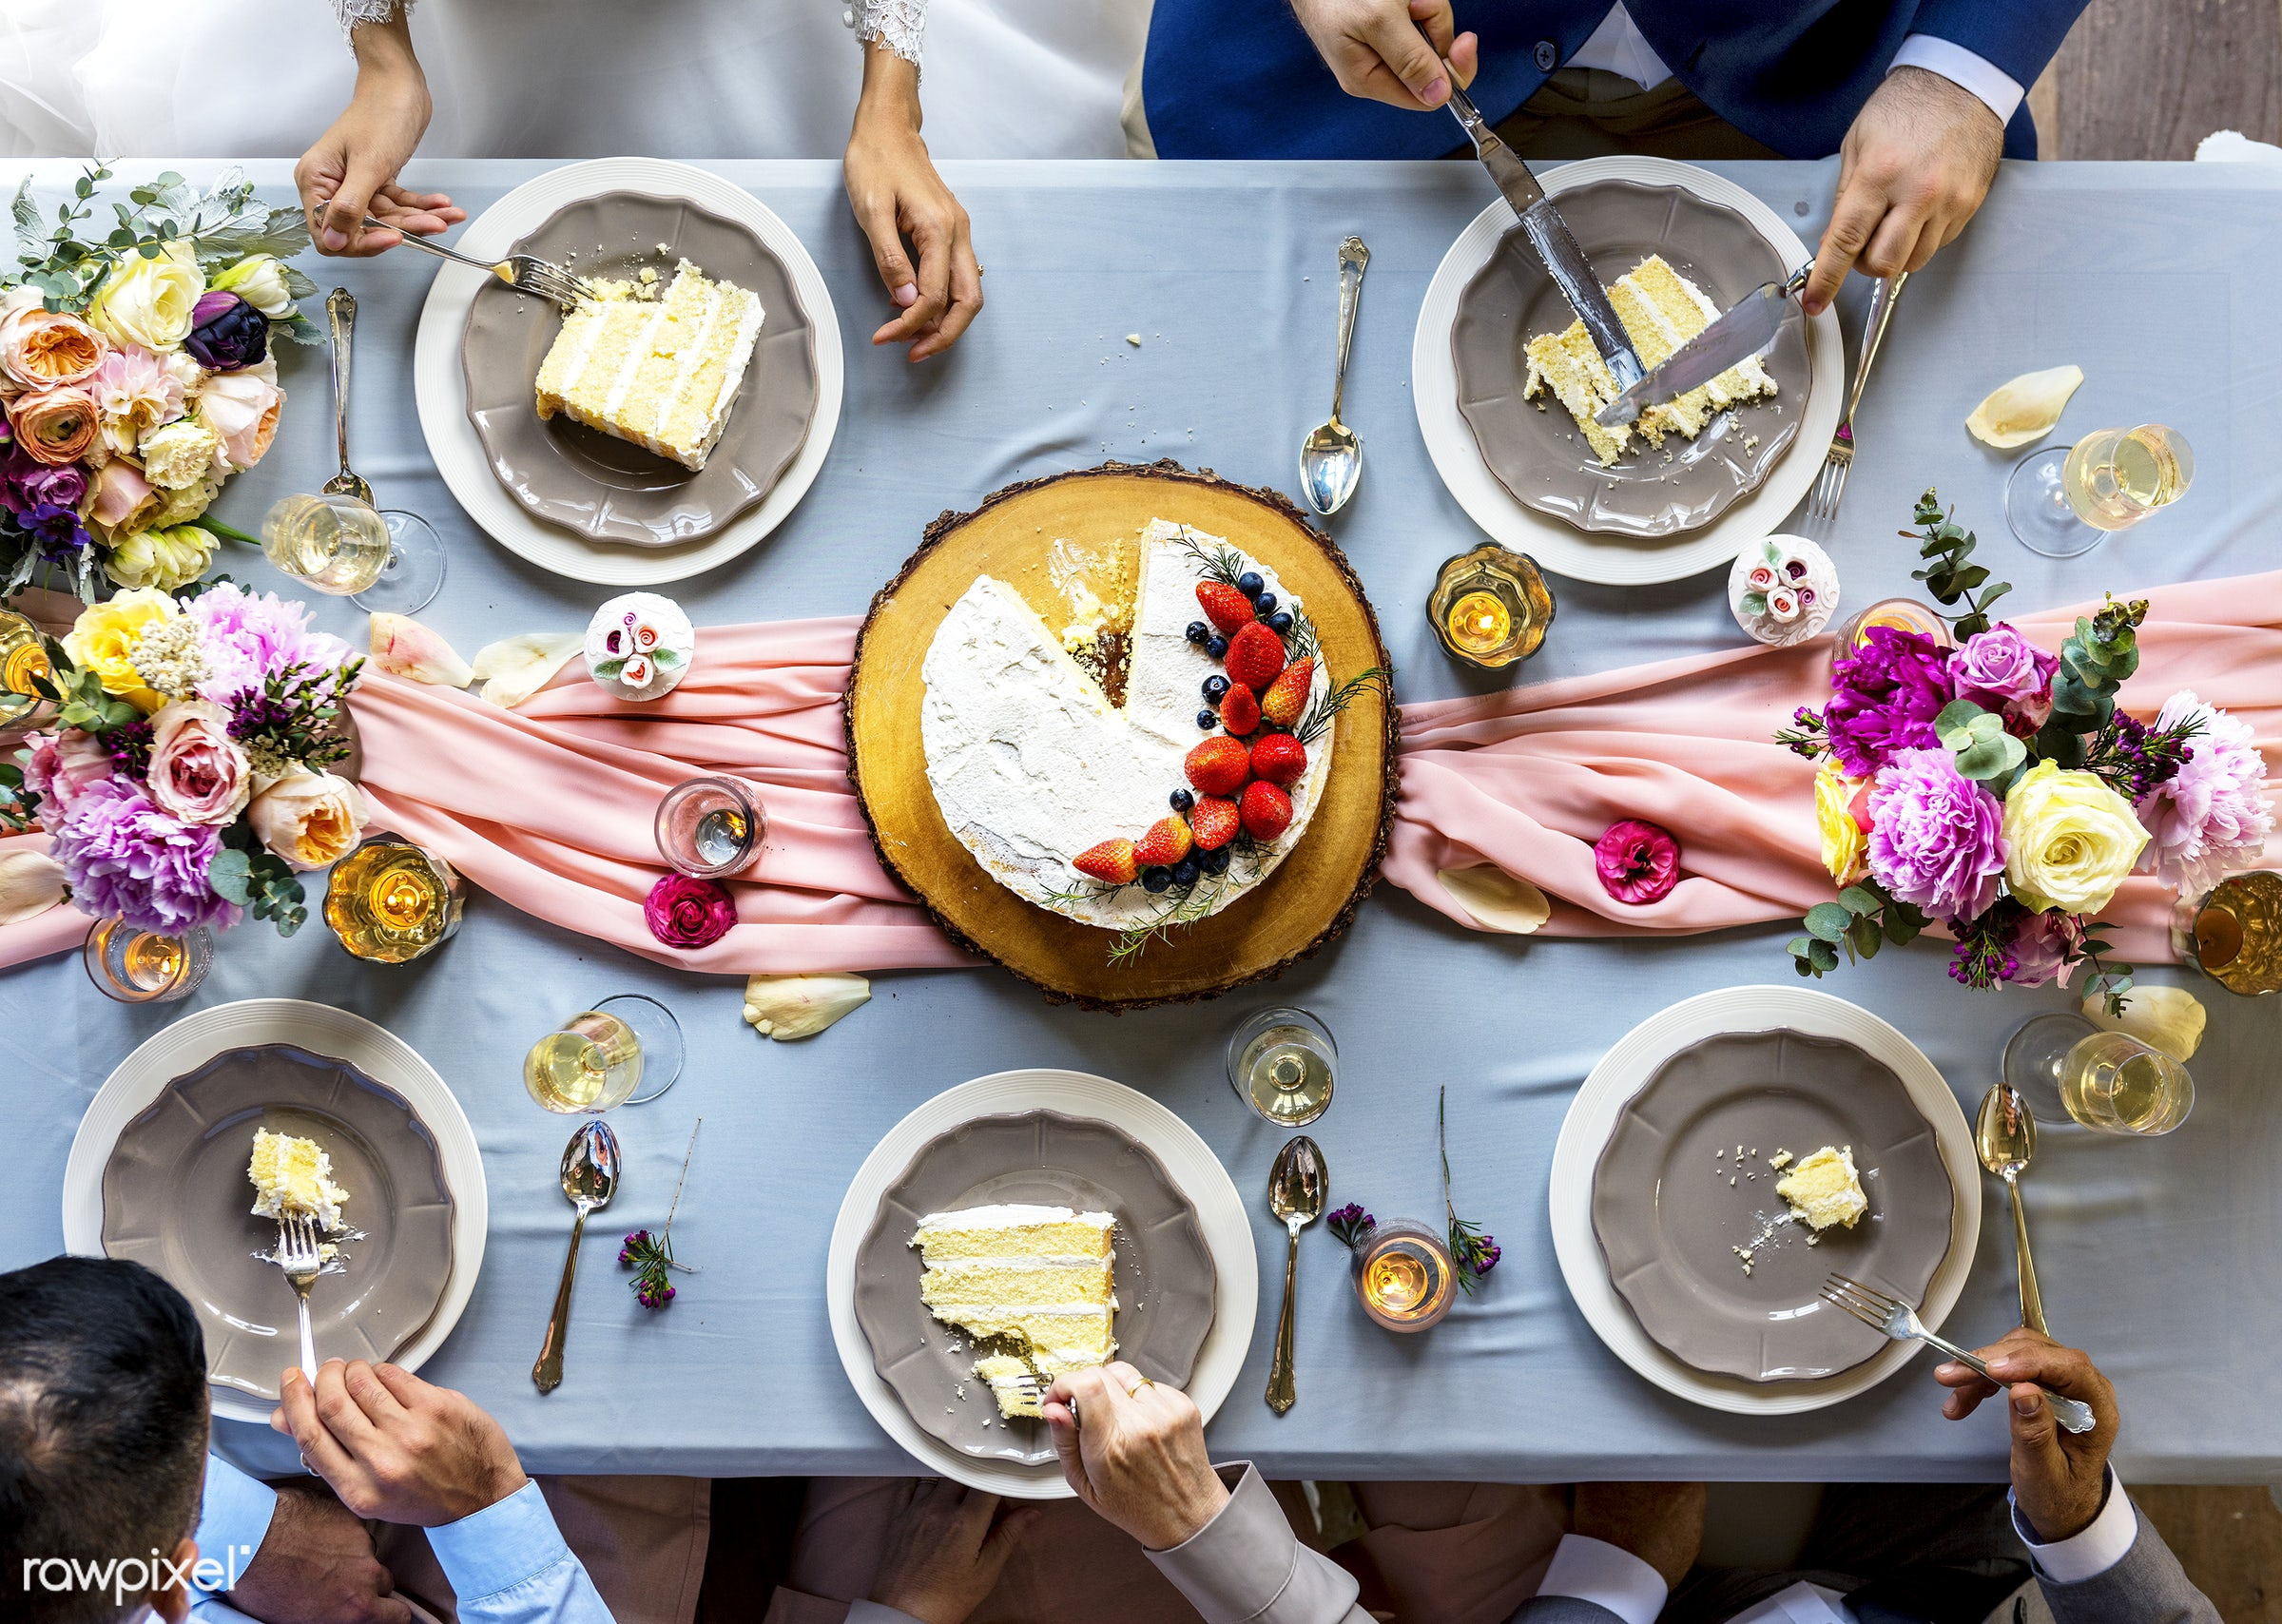 Aerial view of a bridal party dining table - event, cake, sweet, dessert, aerial view, celebration, dining, eating, flowers...